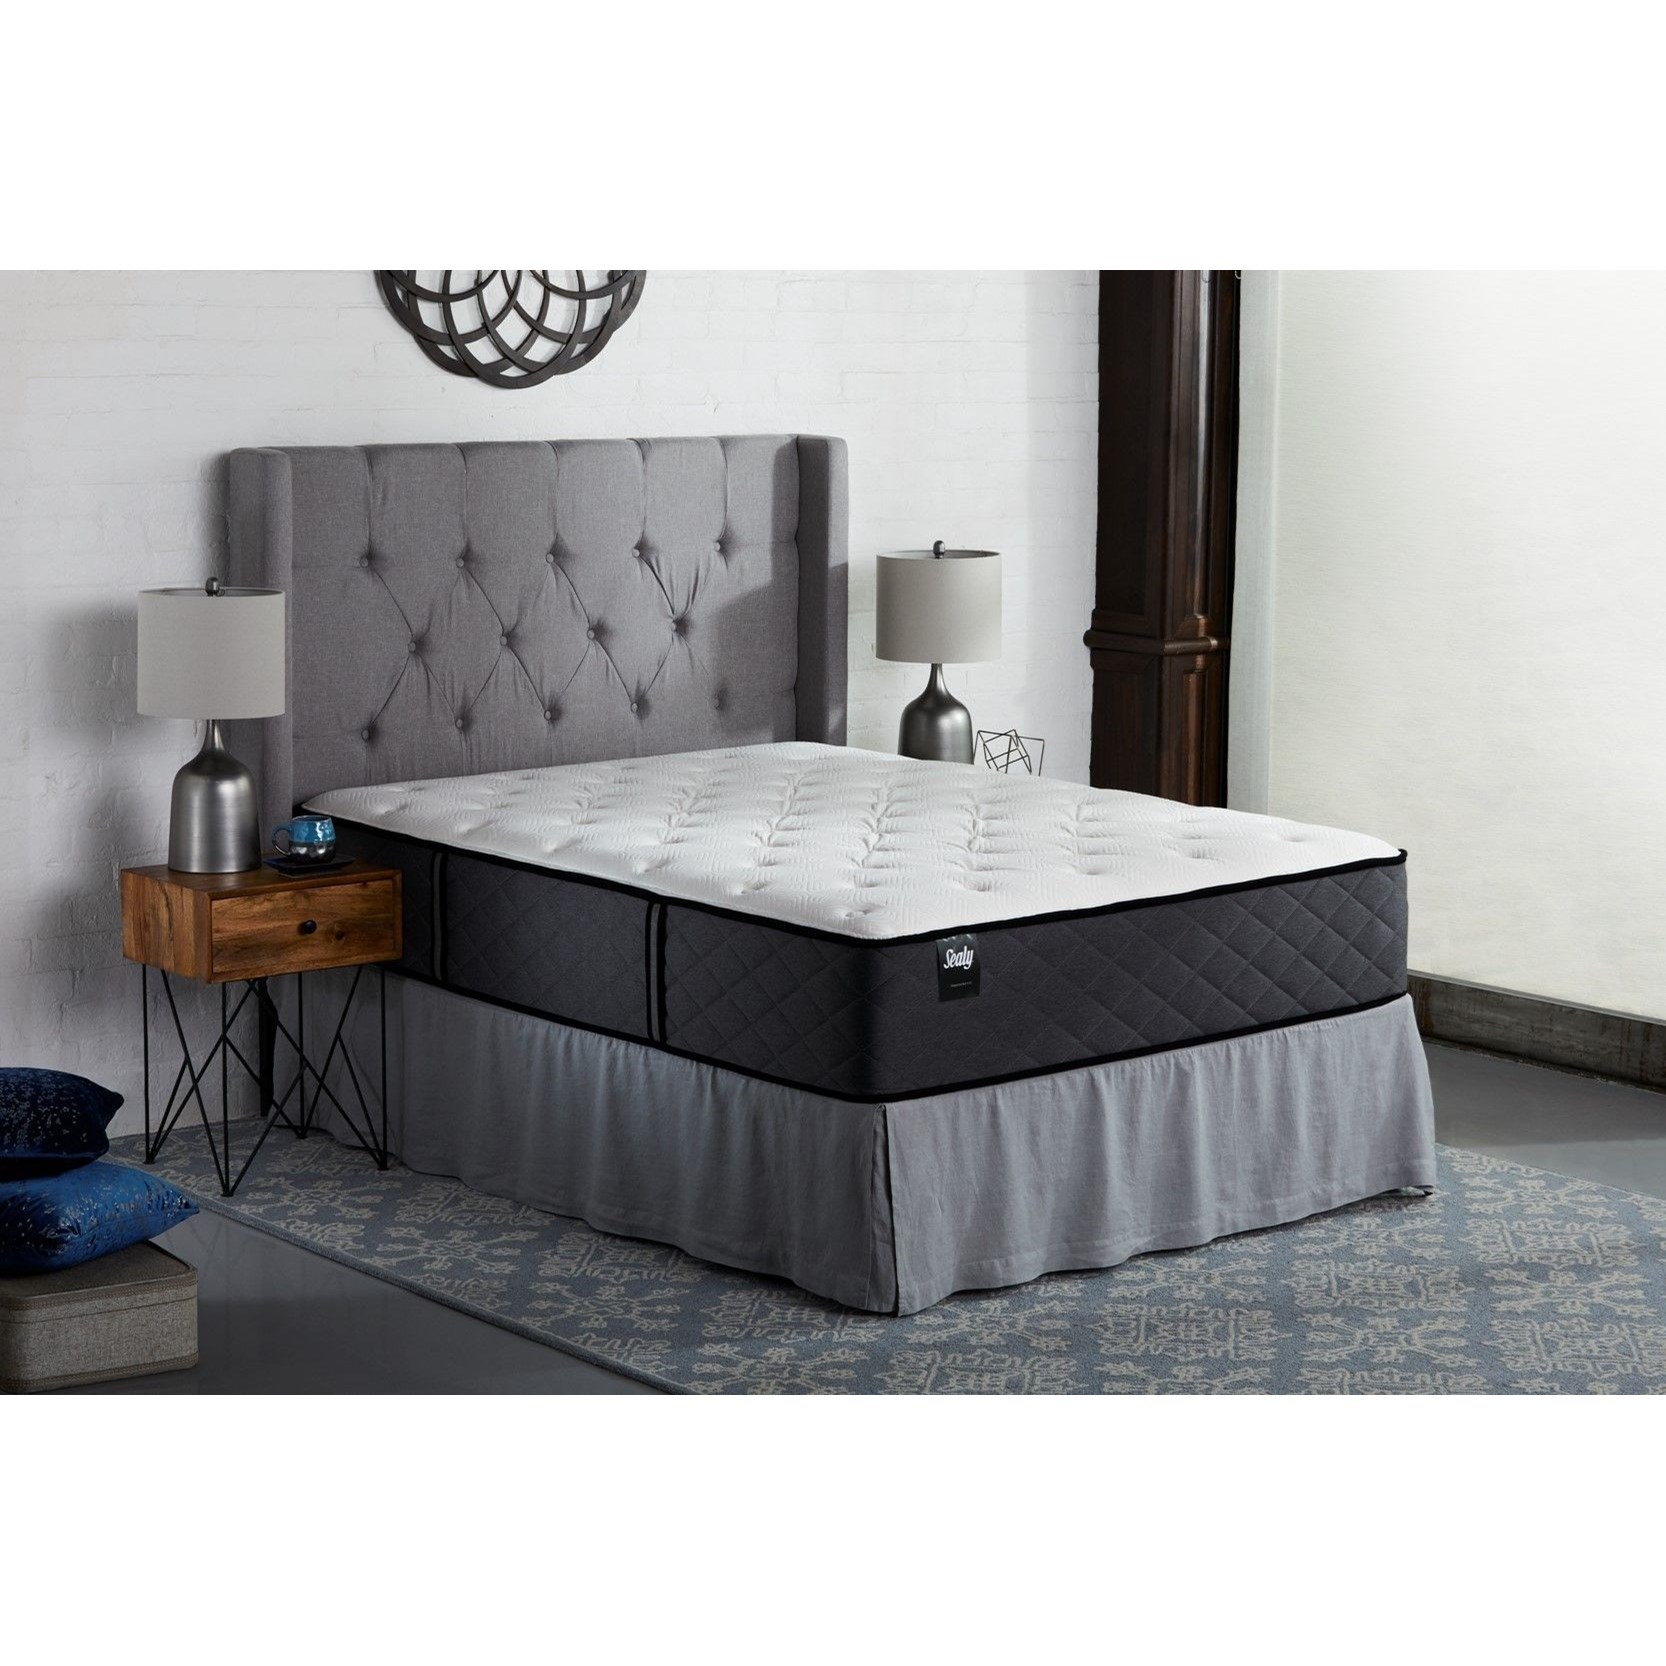 """S5 Firm TT Twin 14 1/2"""" Firm Low Profile Set by Sealy at Novello Home Furnishings"""